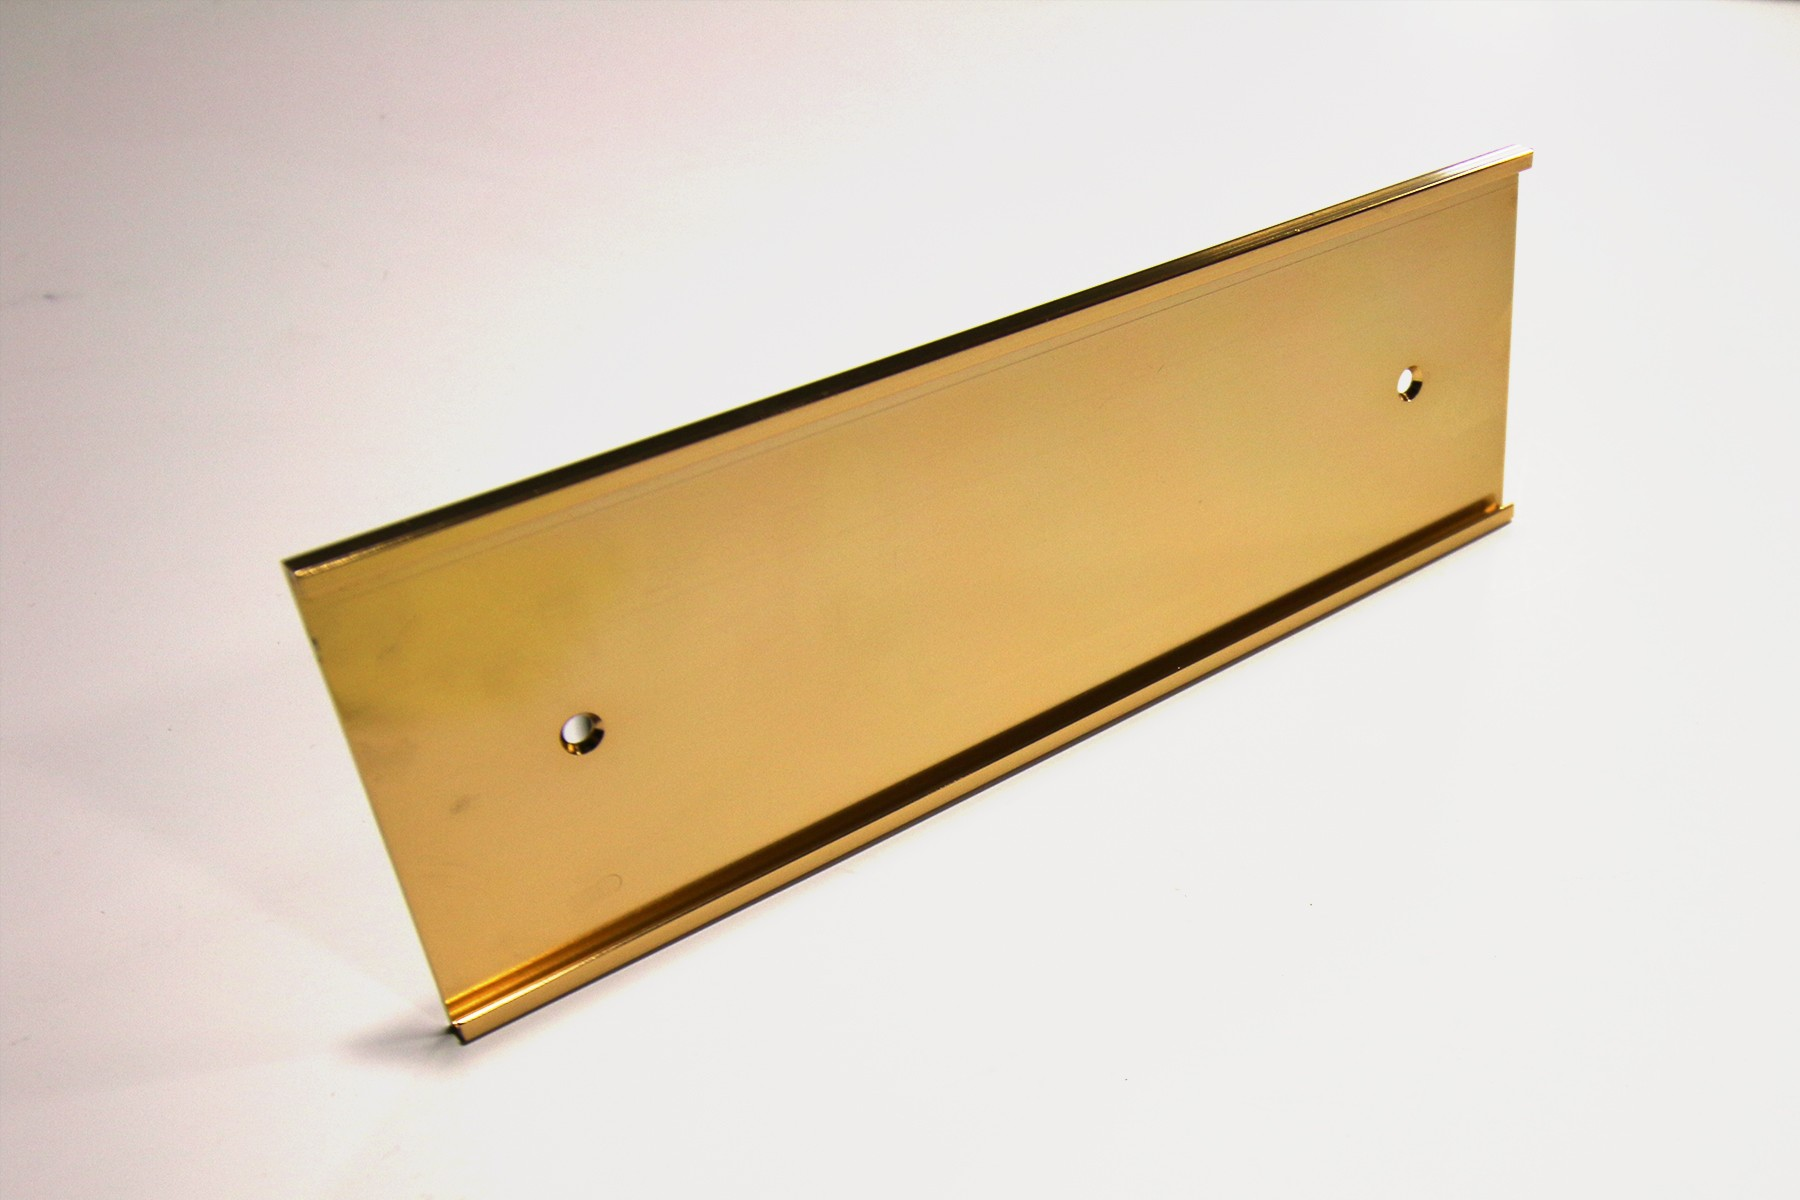 2-1/2 x 10 Wall Holder, Gold